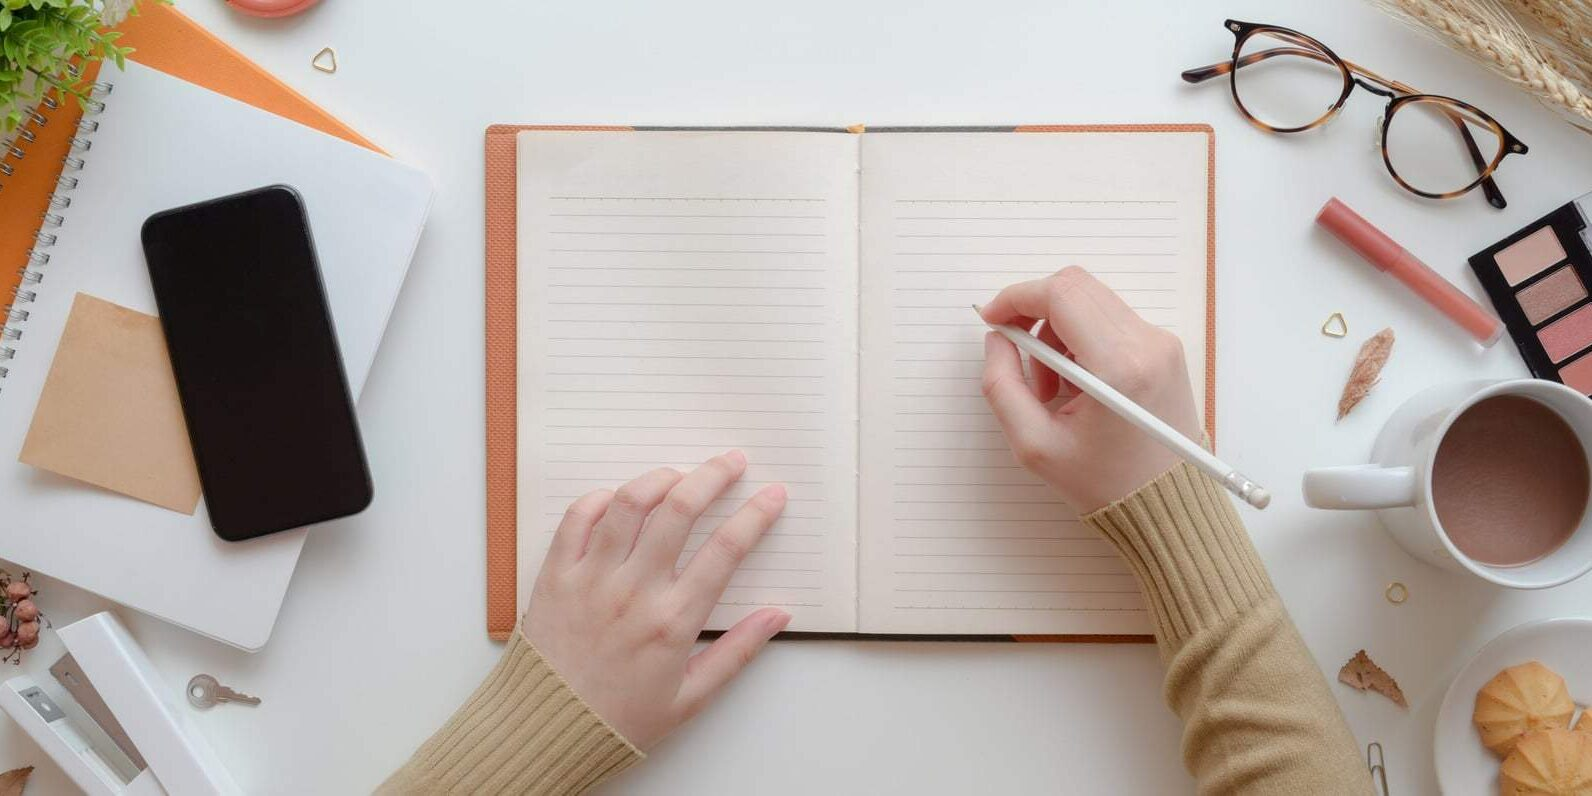 Top view of young female writing on blank notebook in warm beige feminine workspace concept with make up and office supplies